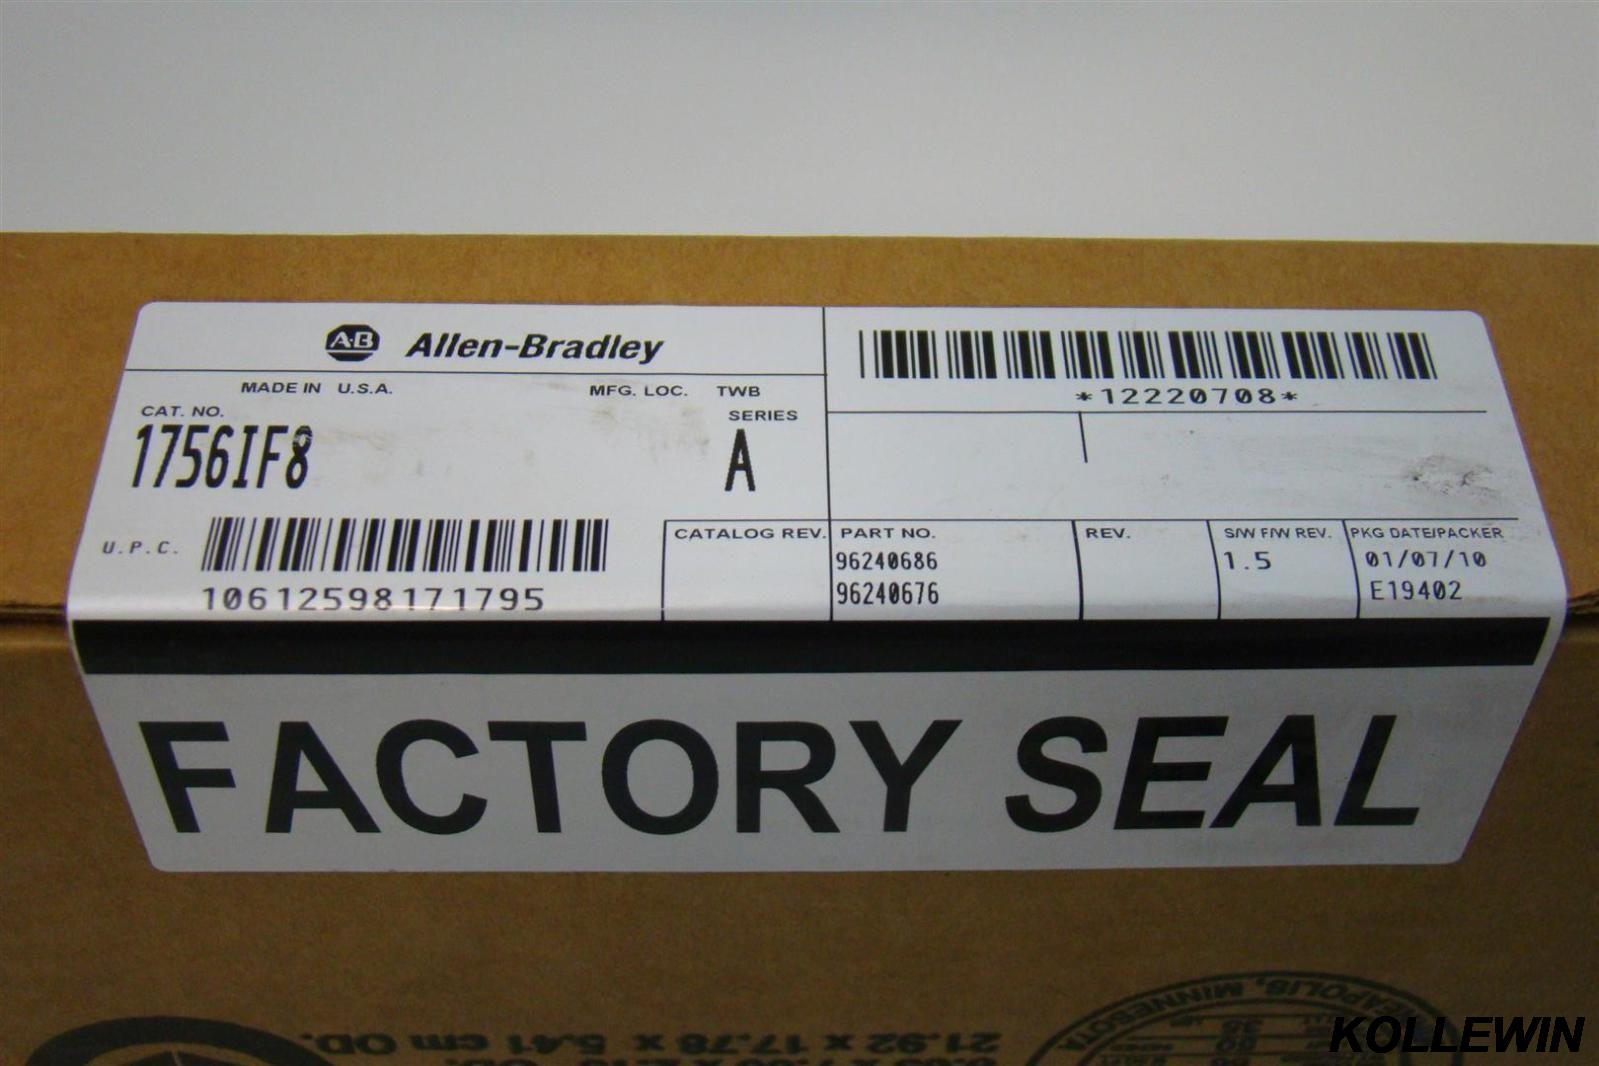 New Original Allen Bradley 1756-IF8 ControlLogix 8 Point A/I Module 1756-IF8 PLC module 1756 IF8 factory sealed 1 year warranty allen bradley 1756 pa75 1756pa75 controllogix ac power supply new and original 100% have in stock free shipping